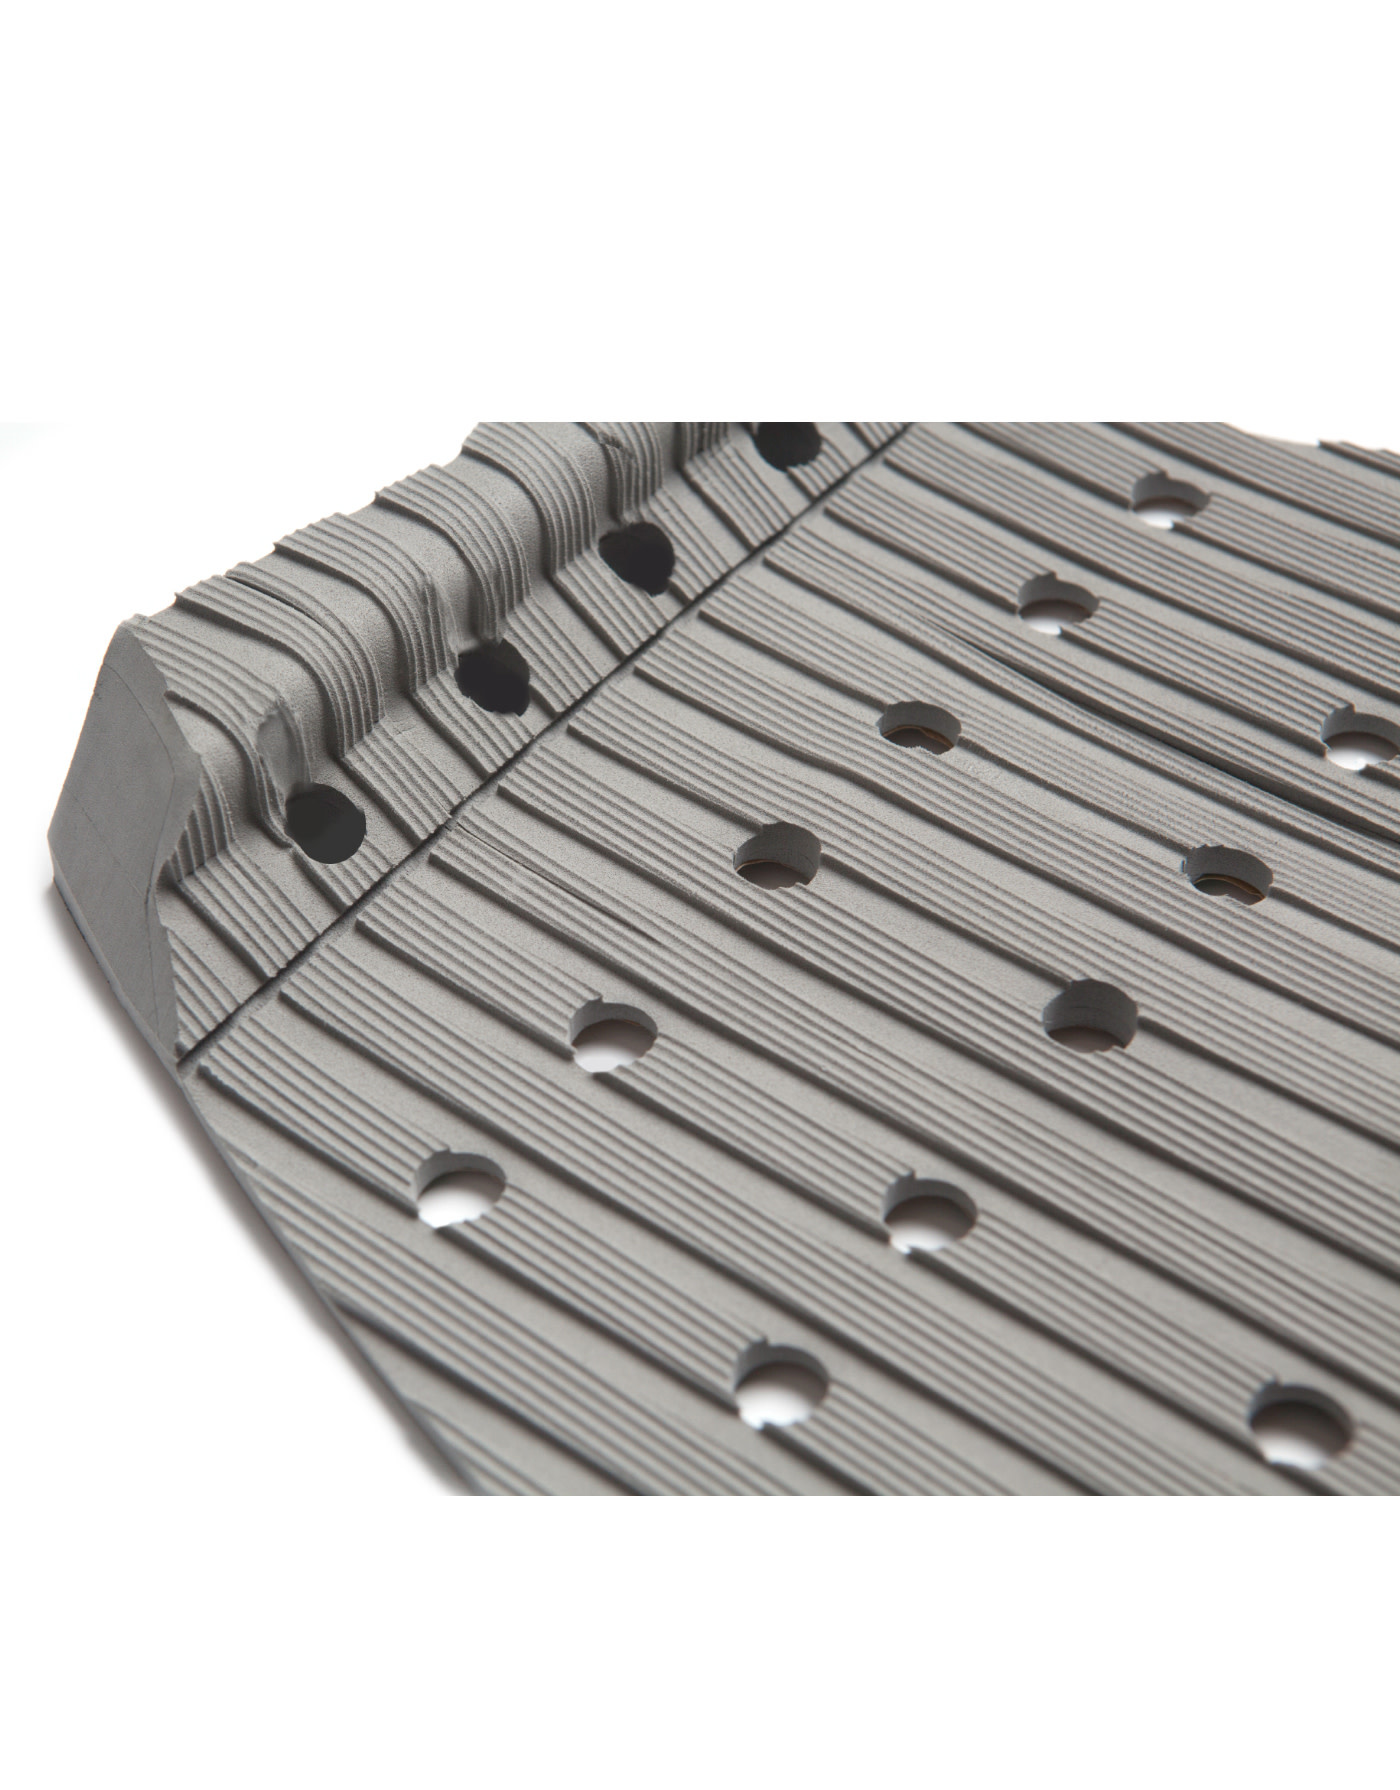 Sympl supply co. Sympl traction pad Tyler Warren grey Nr.2